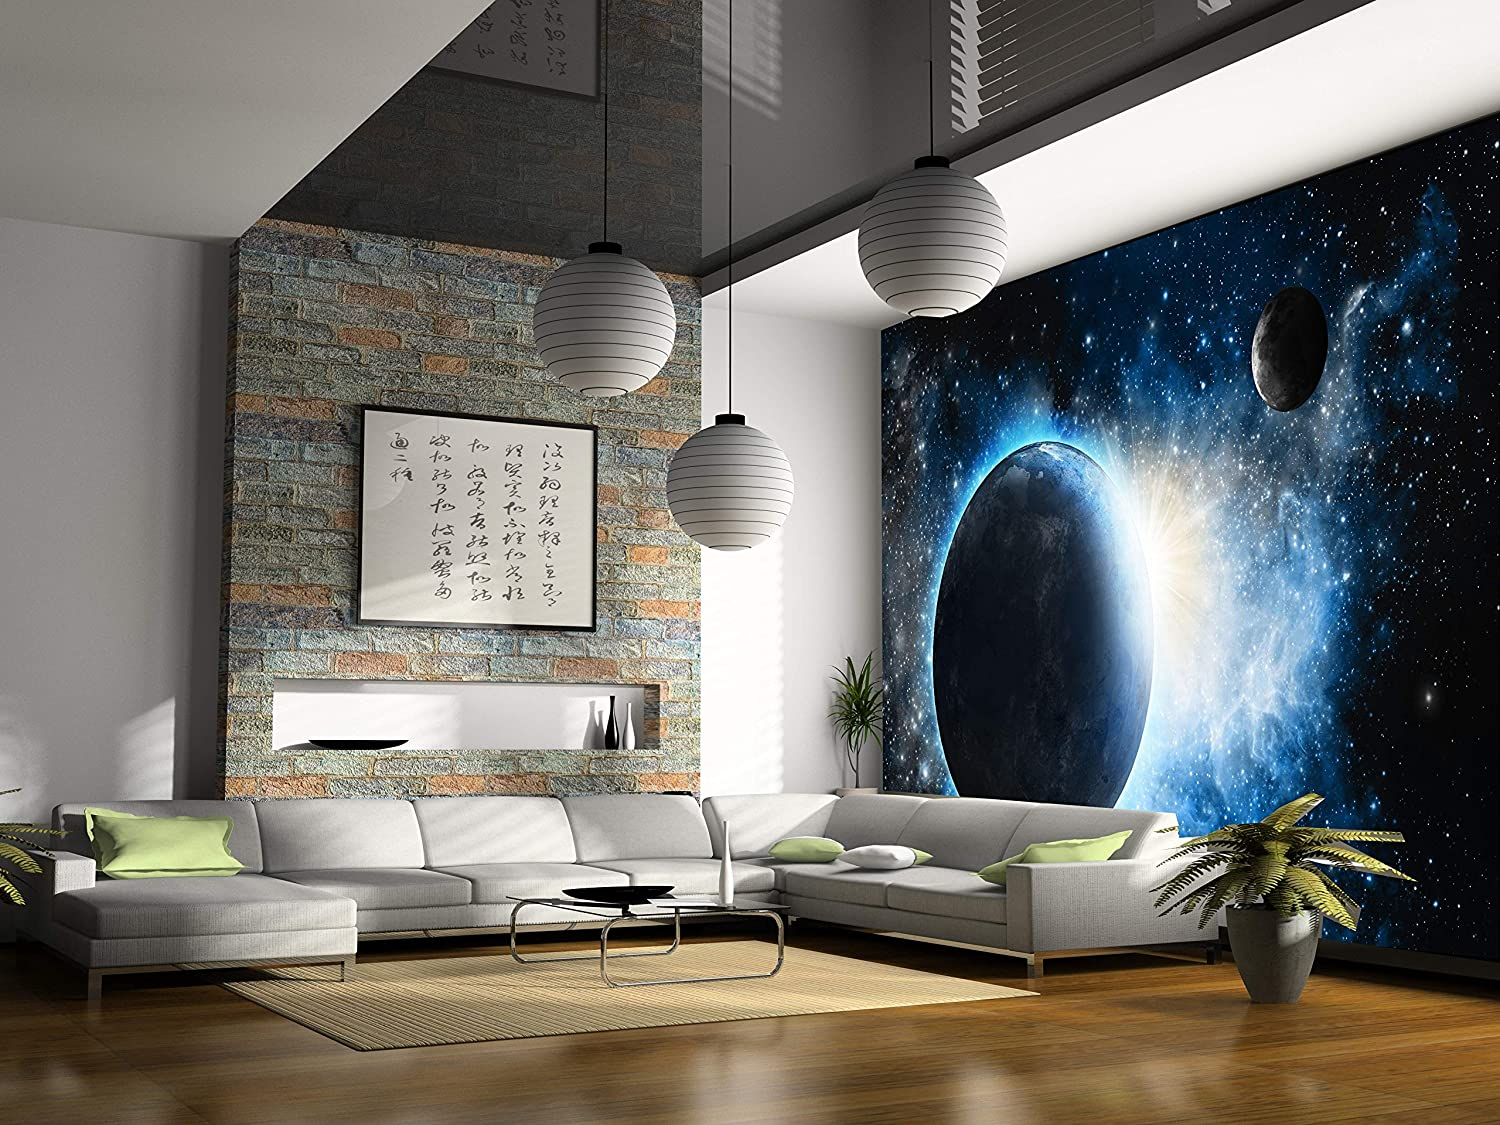 Startonight Mural Wall Art Photo Decor Cosmos Light Large 8 Feet 4 Inch By  12 Feet Wall Mural For Living Room Or Bedroom     Amazon.com Part 76